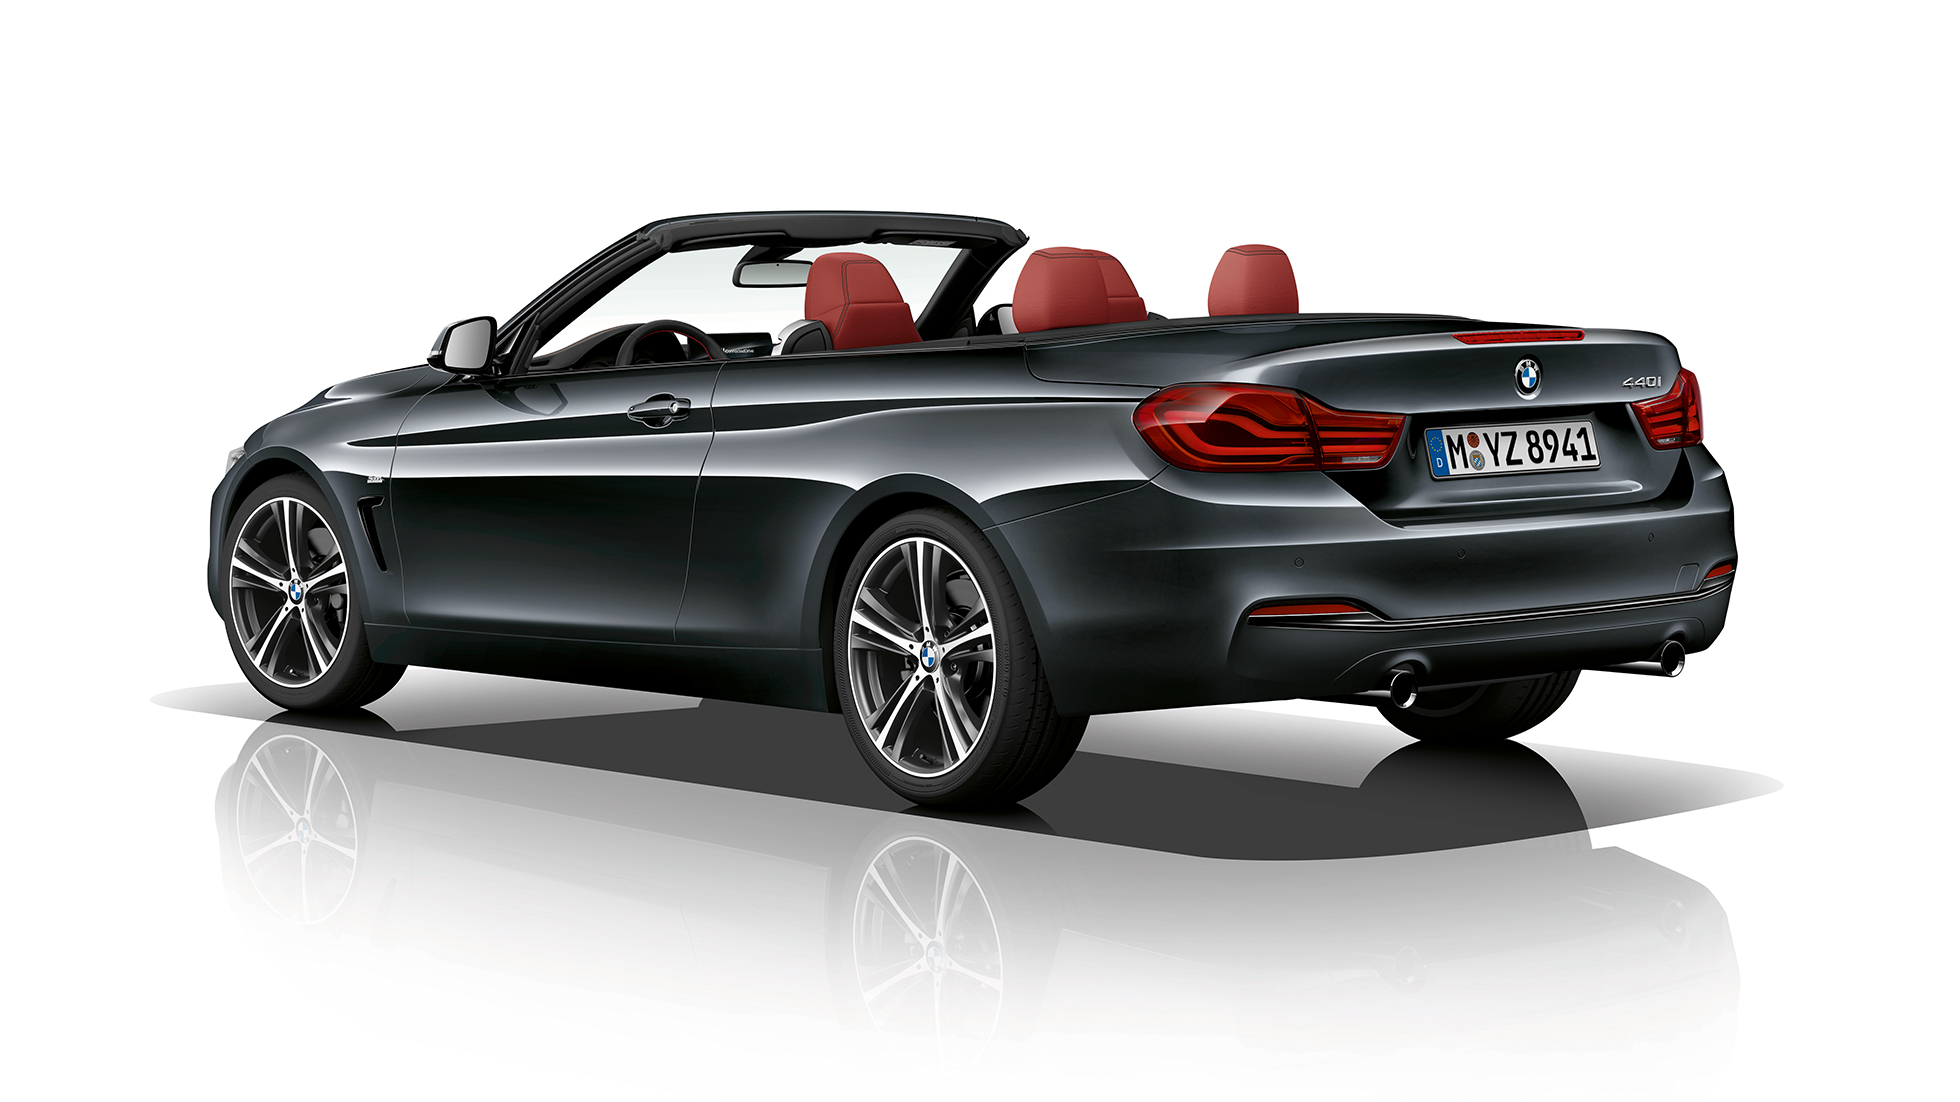 BMW 4 Series Convertible, Model Sport Line three-quarter rear shot